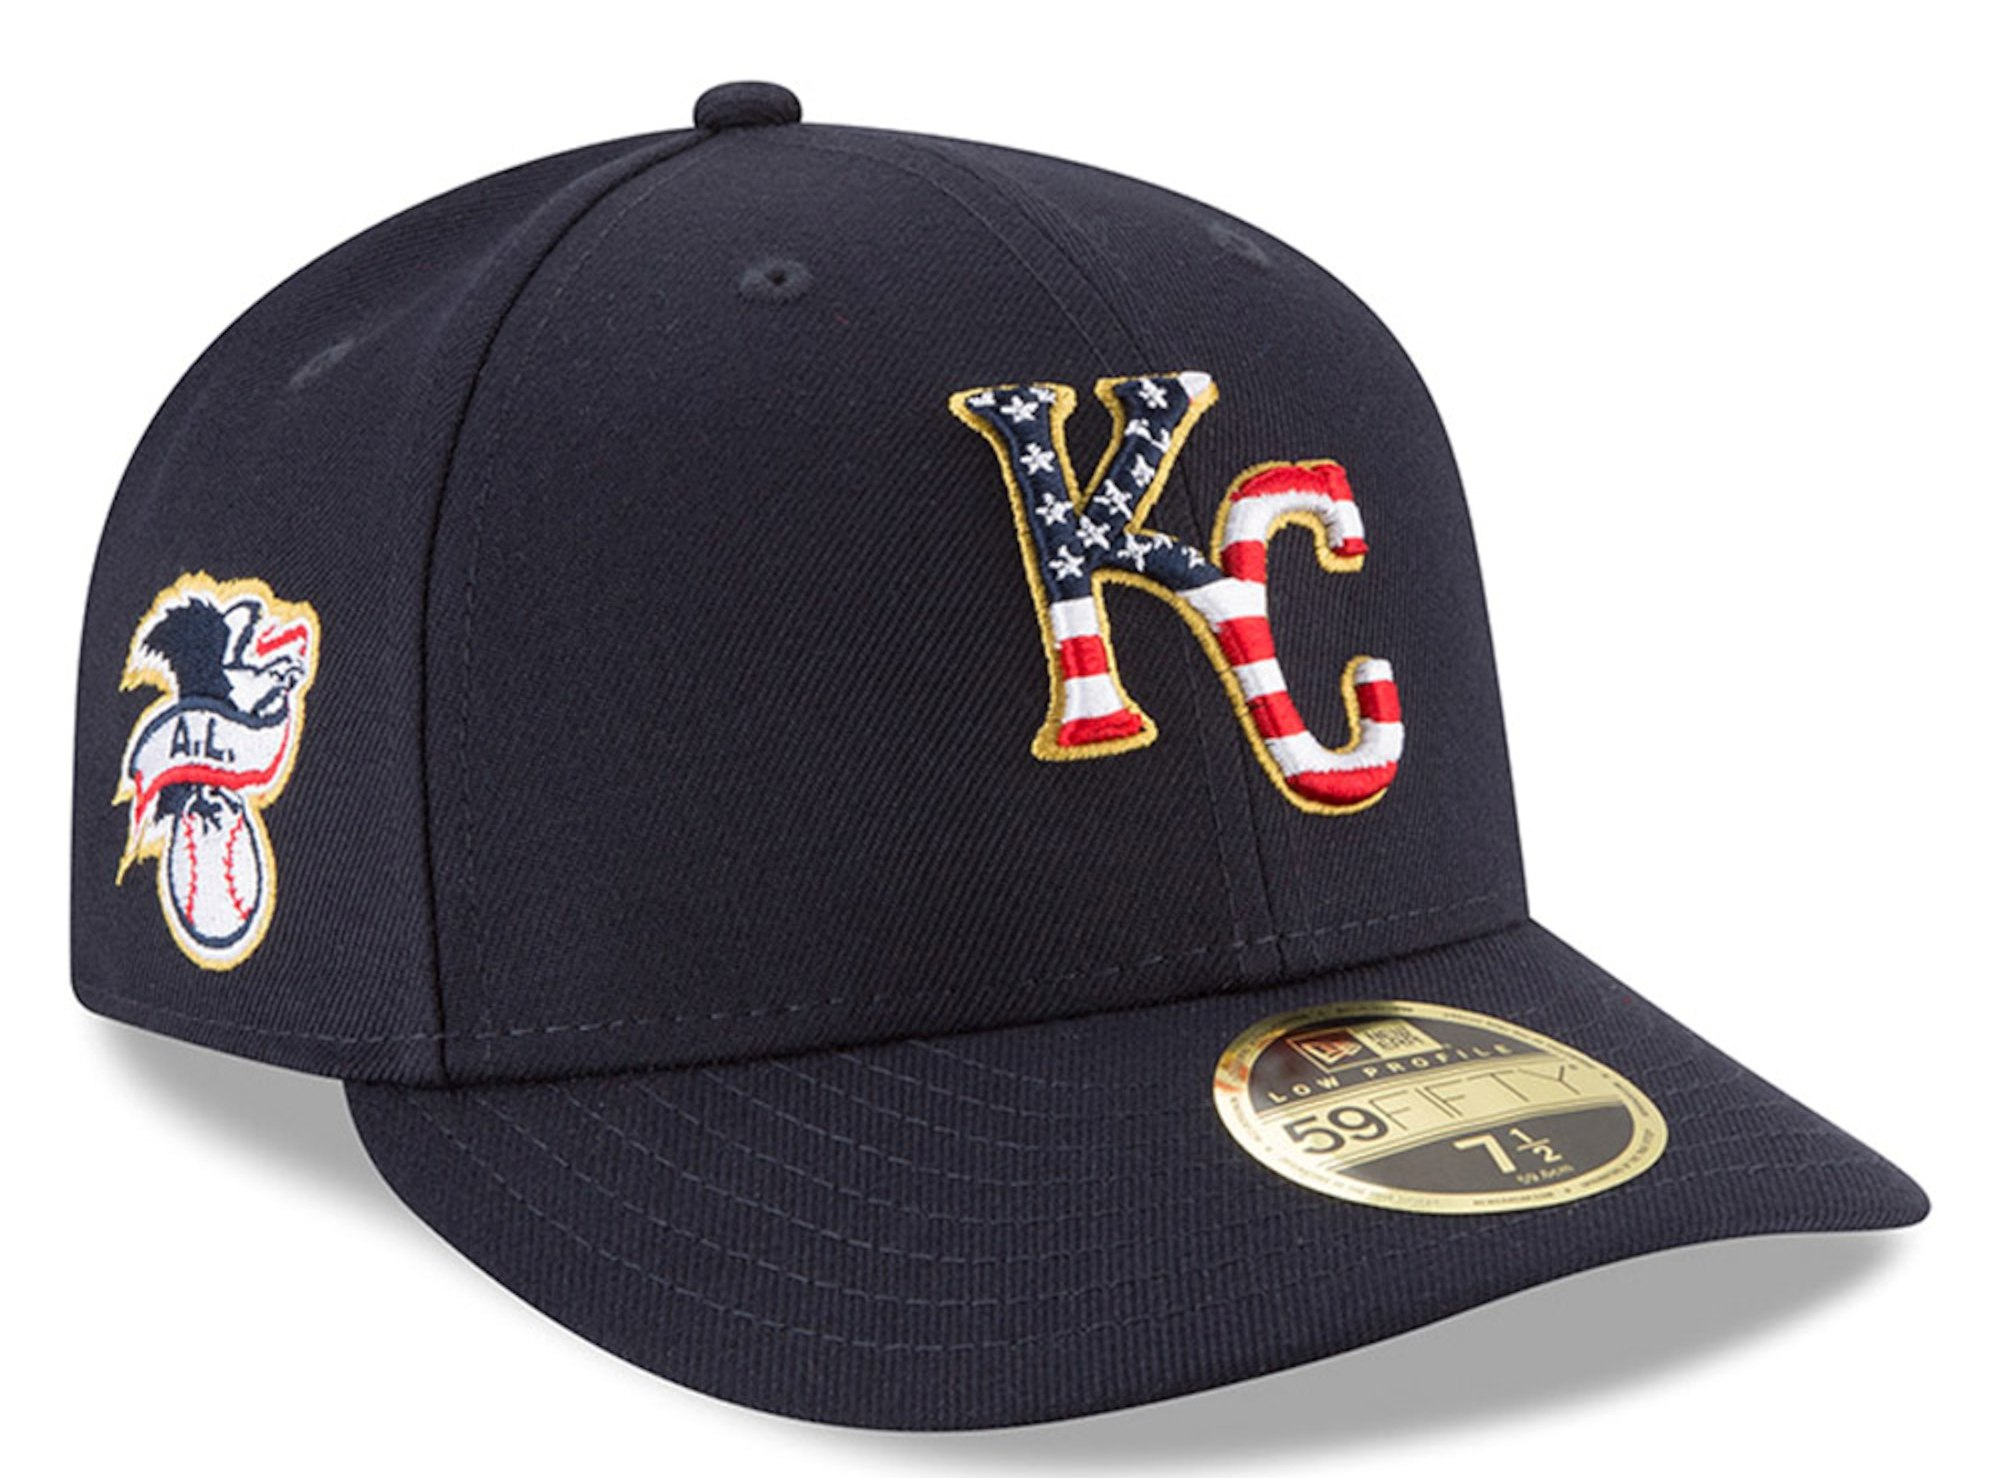 Kansas City Royals New Era 2018 Stars & Stripes 4th of July On-Field Low Profile 59FIFTY Fitted Hat – Navy.